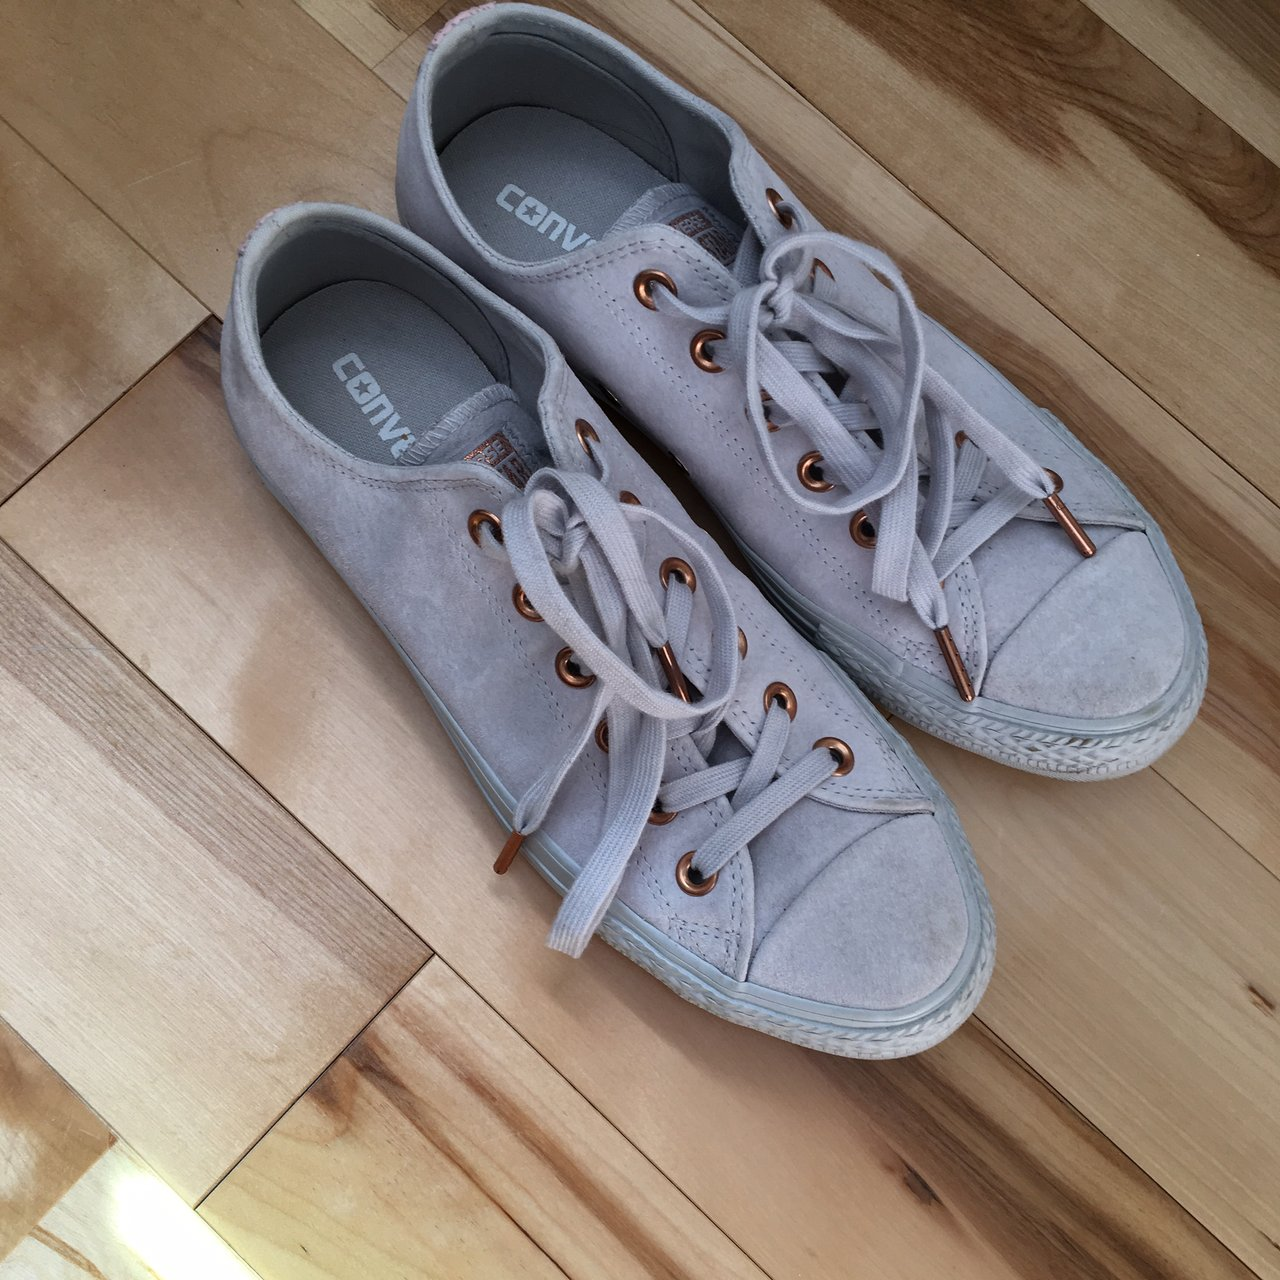 5bae6d91d2d1 all suede grey converse w  gold rings and pink accents. were - Depop